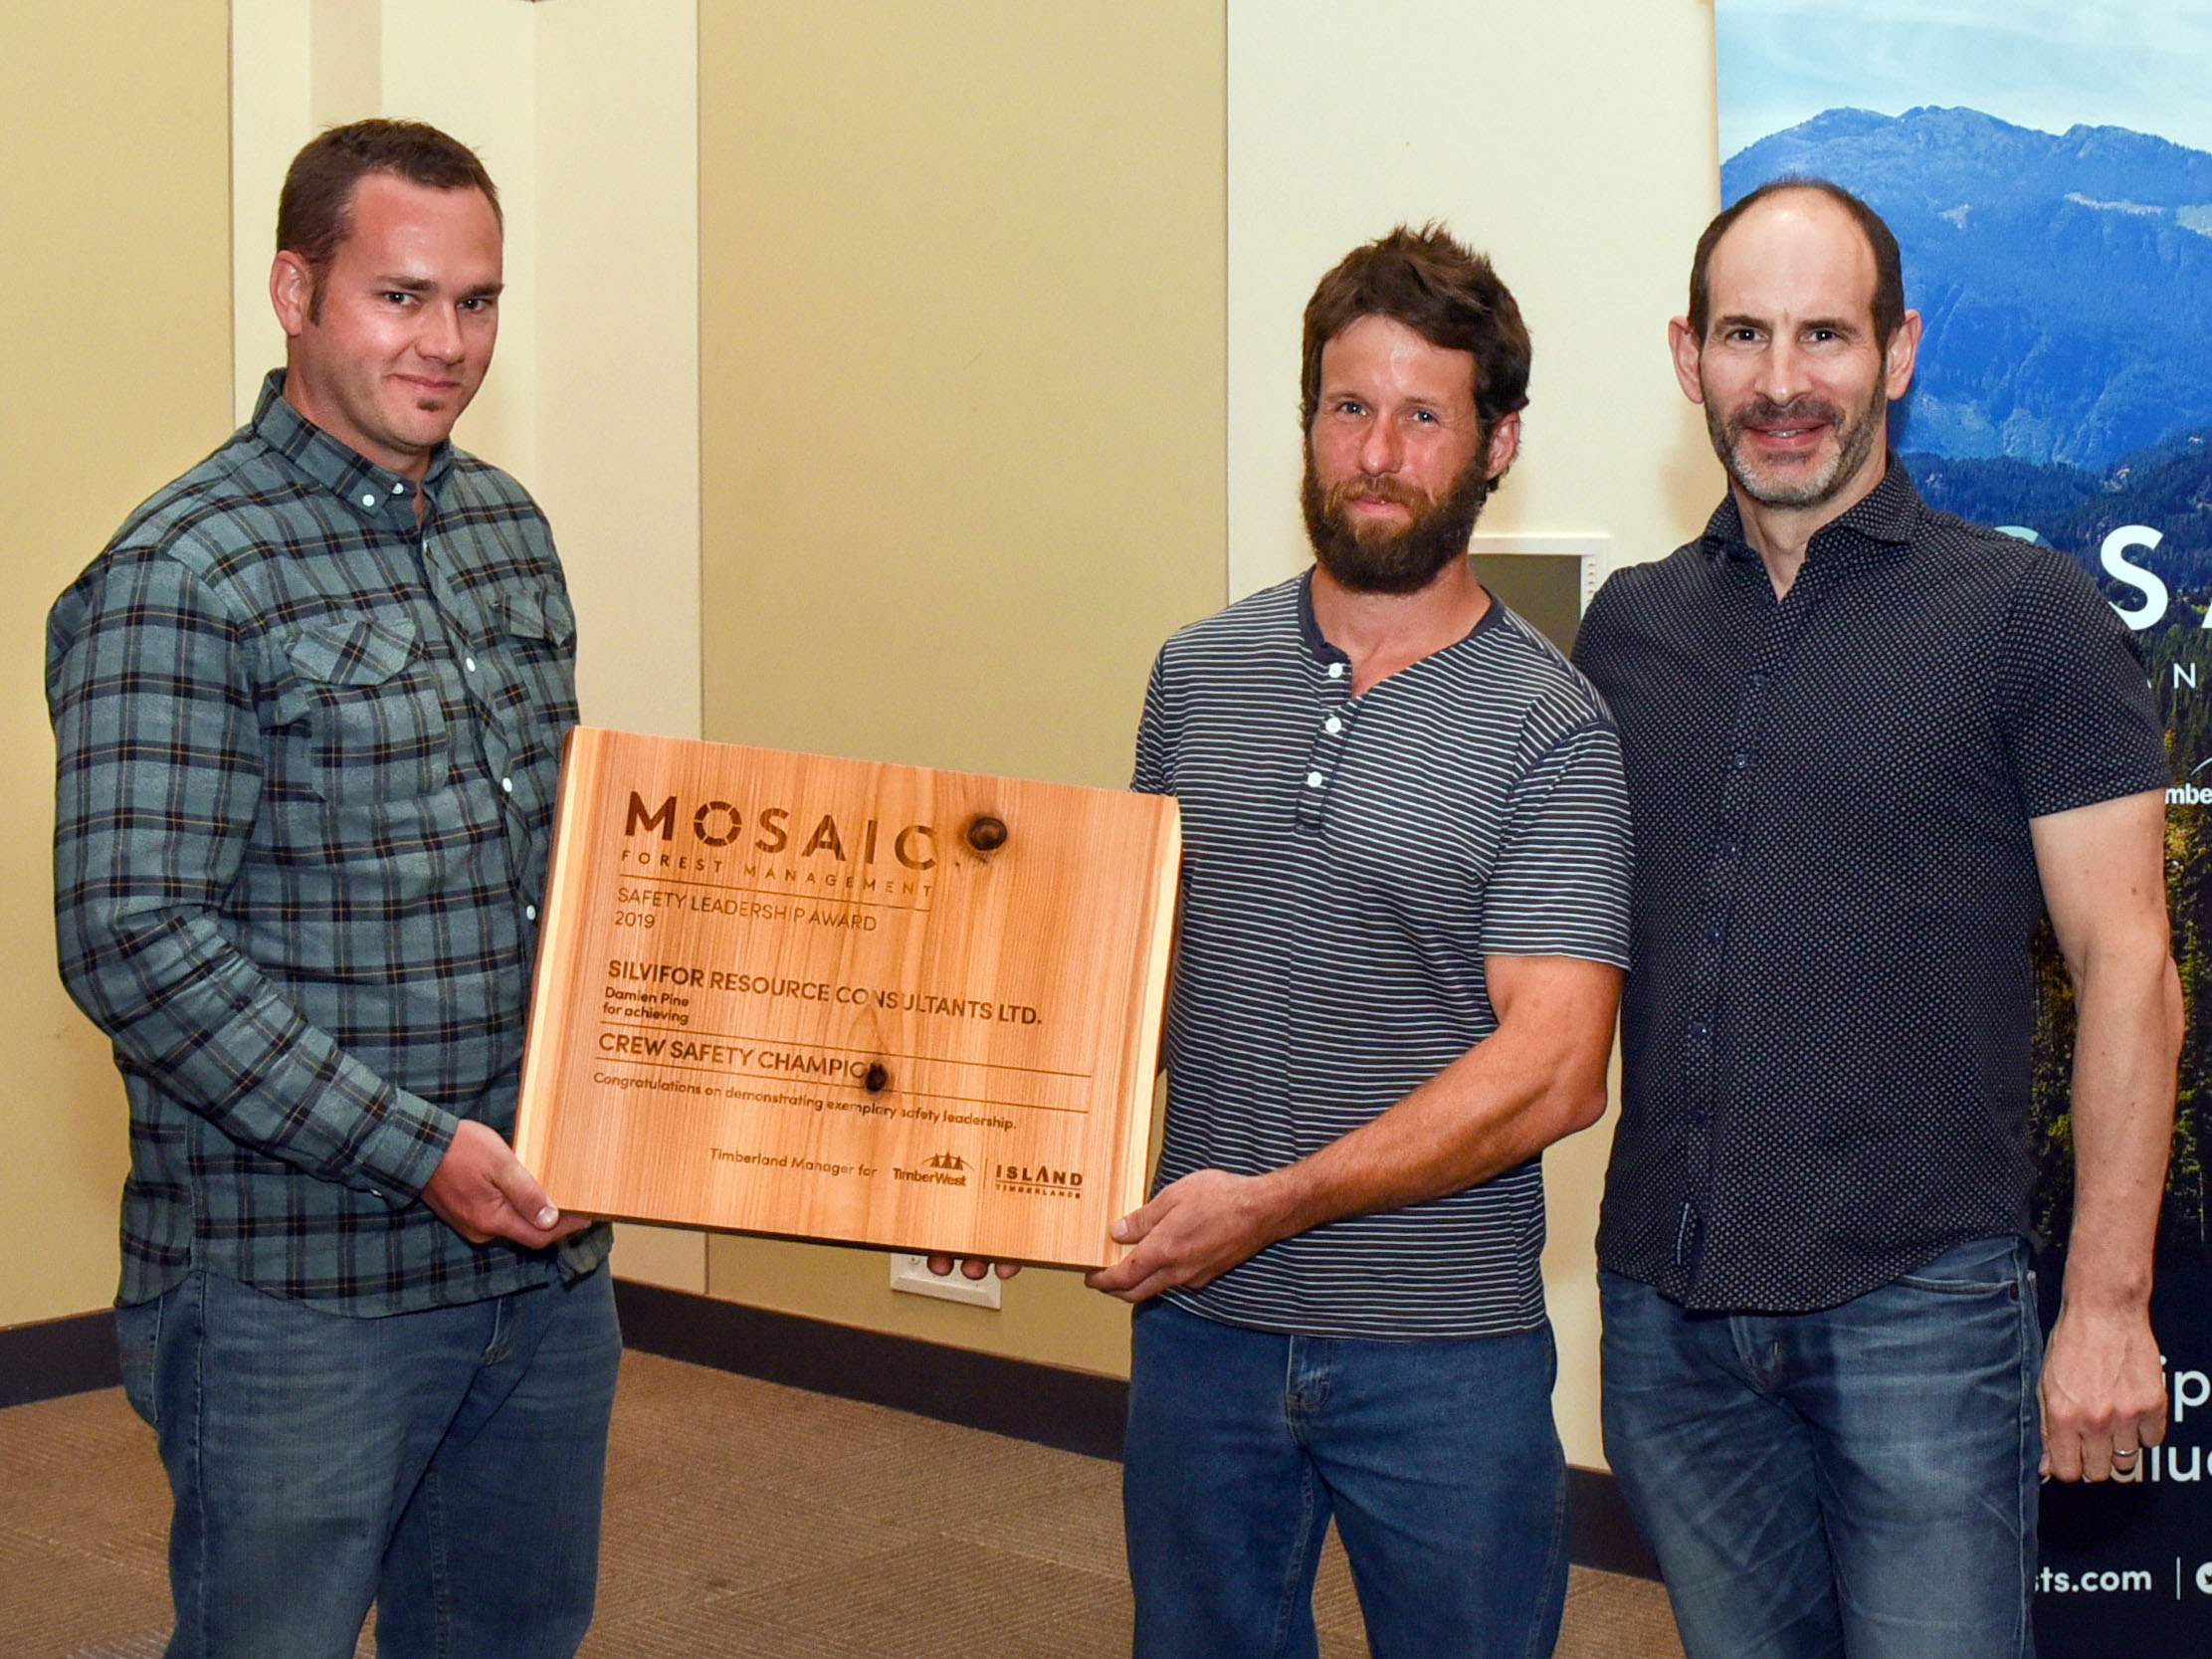 (l to r) Mosaic's Senior Manager Forestry Operations, Jimmie Hodgson; Damien Pine, of Silvifor Resource Consultants Ltd.; and Jeff Zweig, President and Chief Executive Officer, Mosaic.